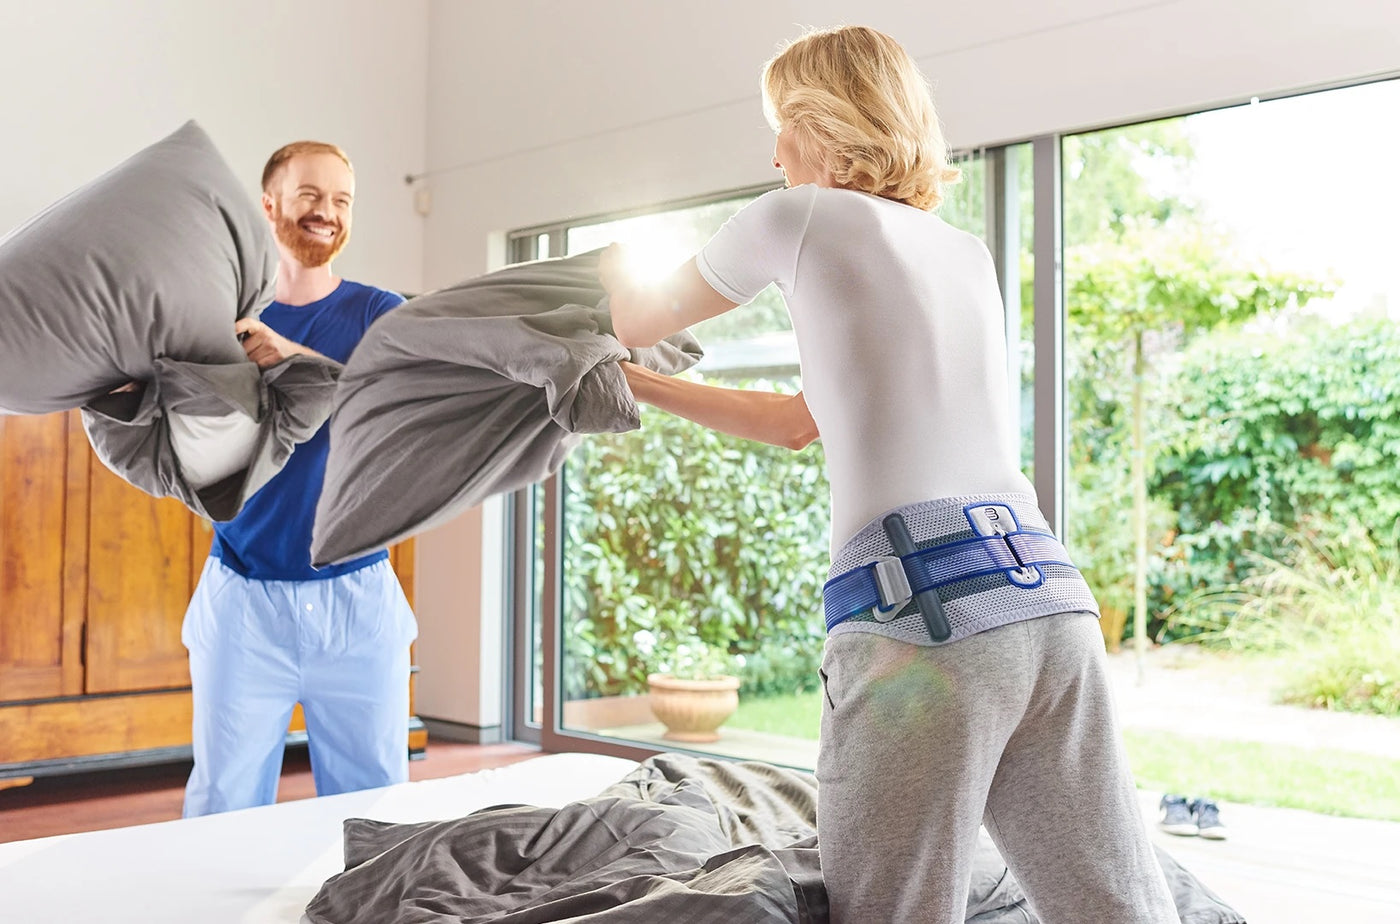 Man and woman having a pillow fight, wearing shirts and pajamas and with a medical brace and support made by Bauerfeind.